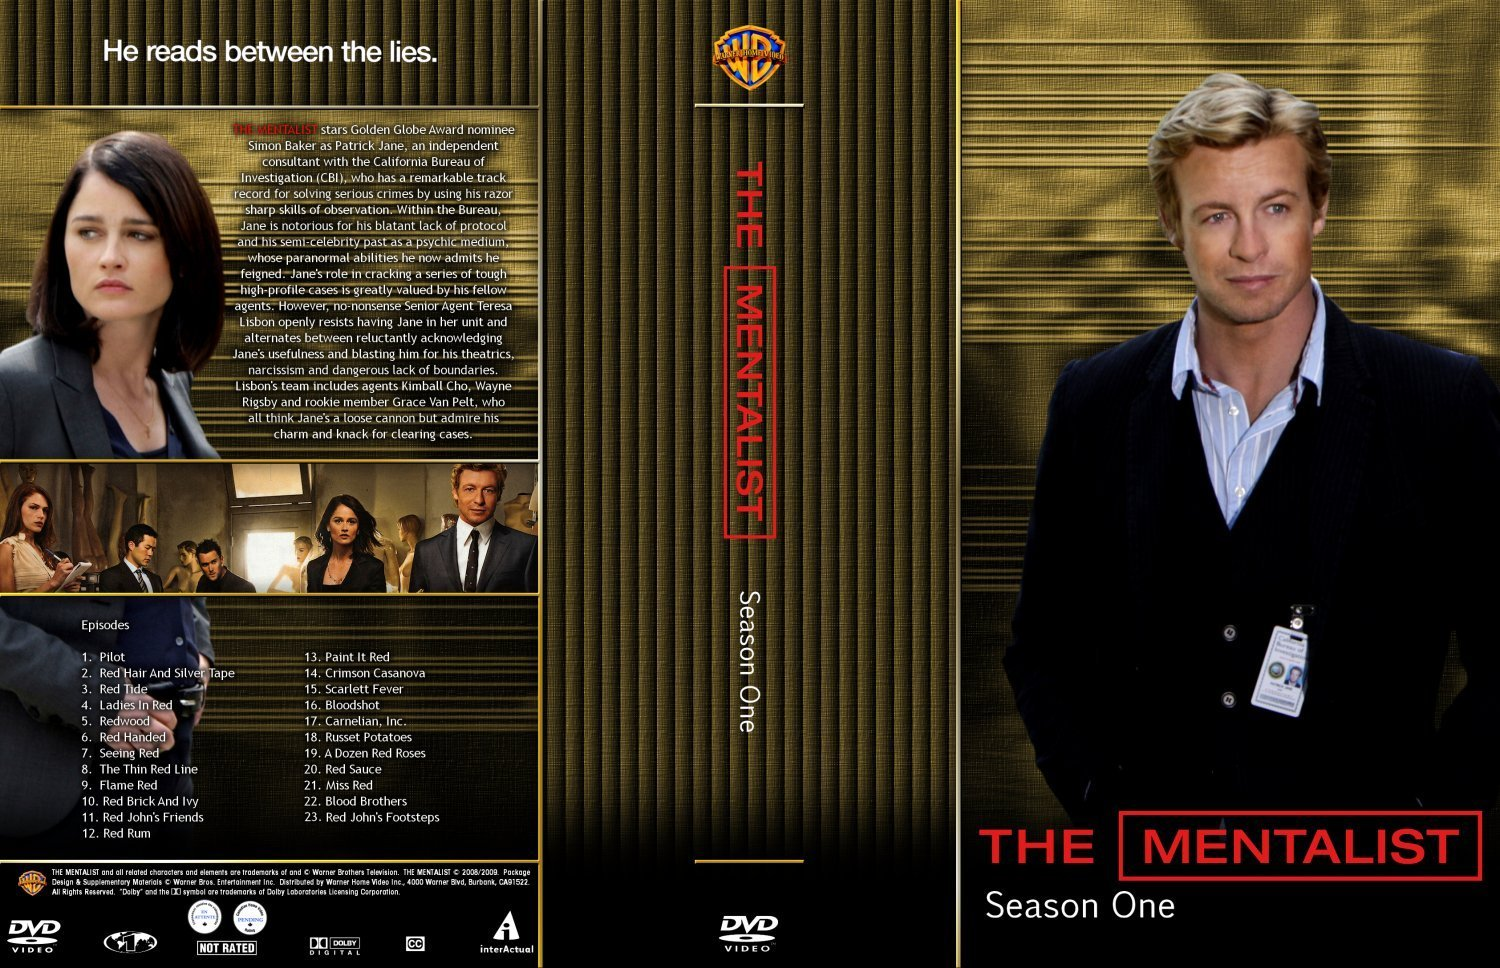 The Mentalist Season 1 | Dvd Covers and Labels